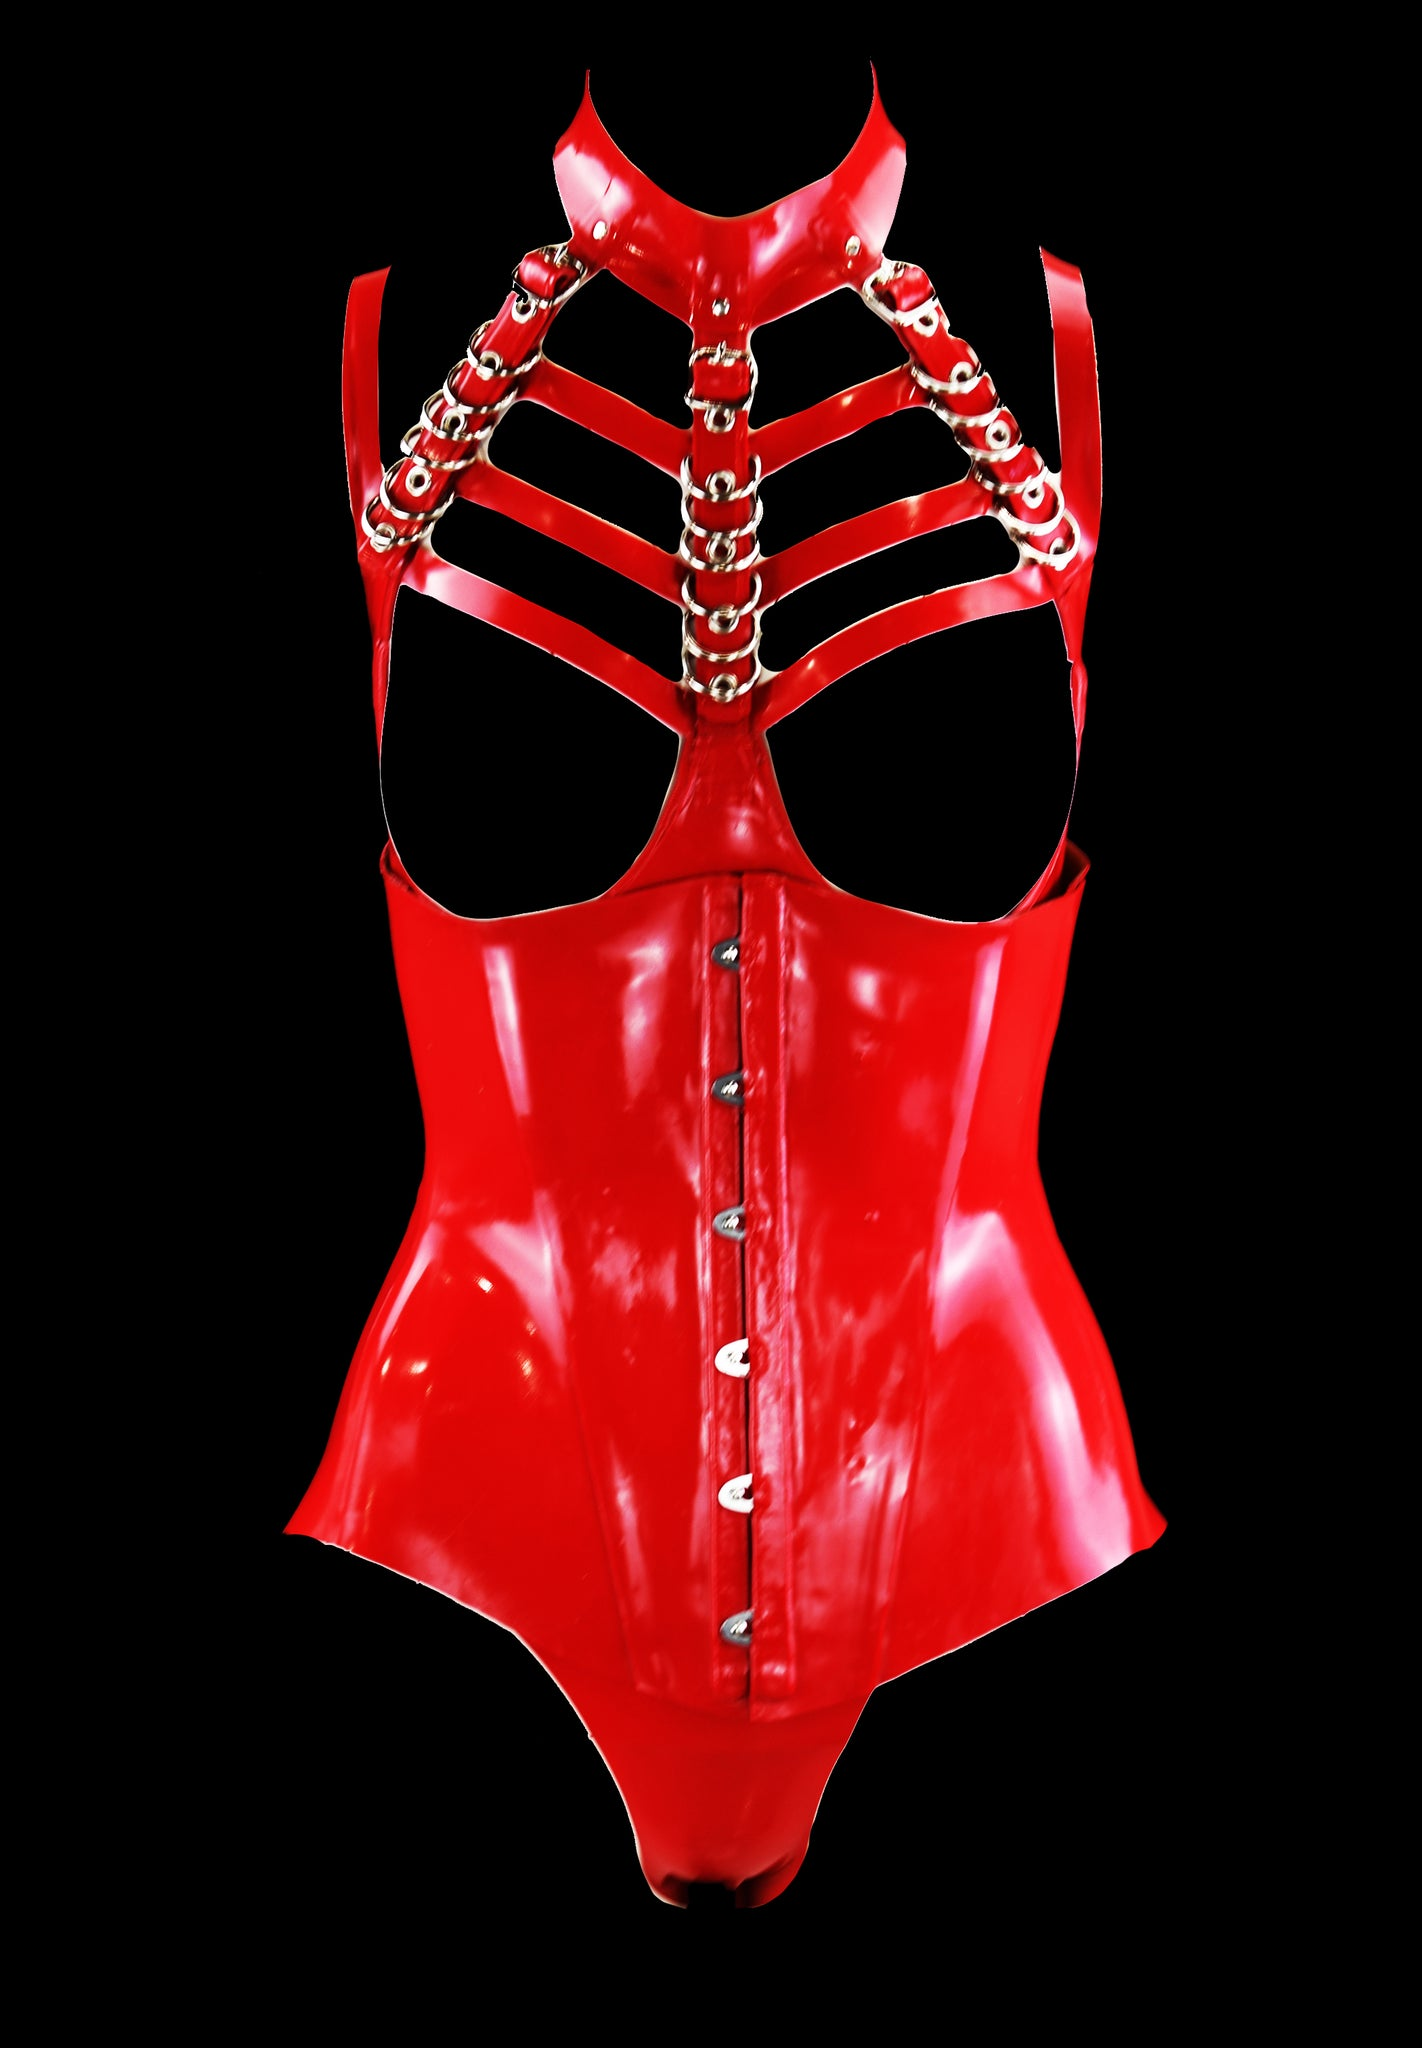 Cherry Red Latex Triple Restricted Neck Cage Bra & Heavy Rubber Underbust Corset